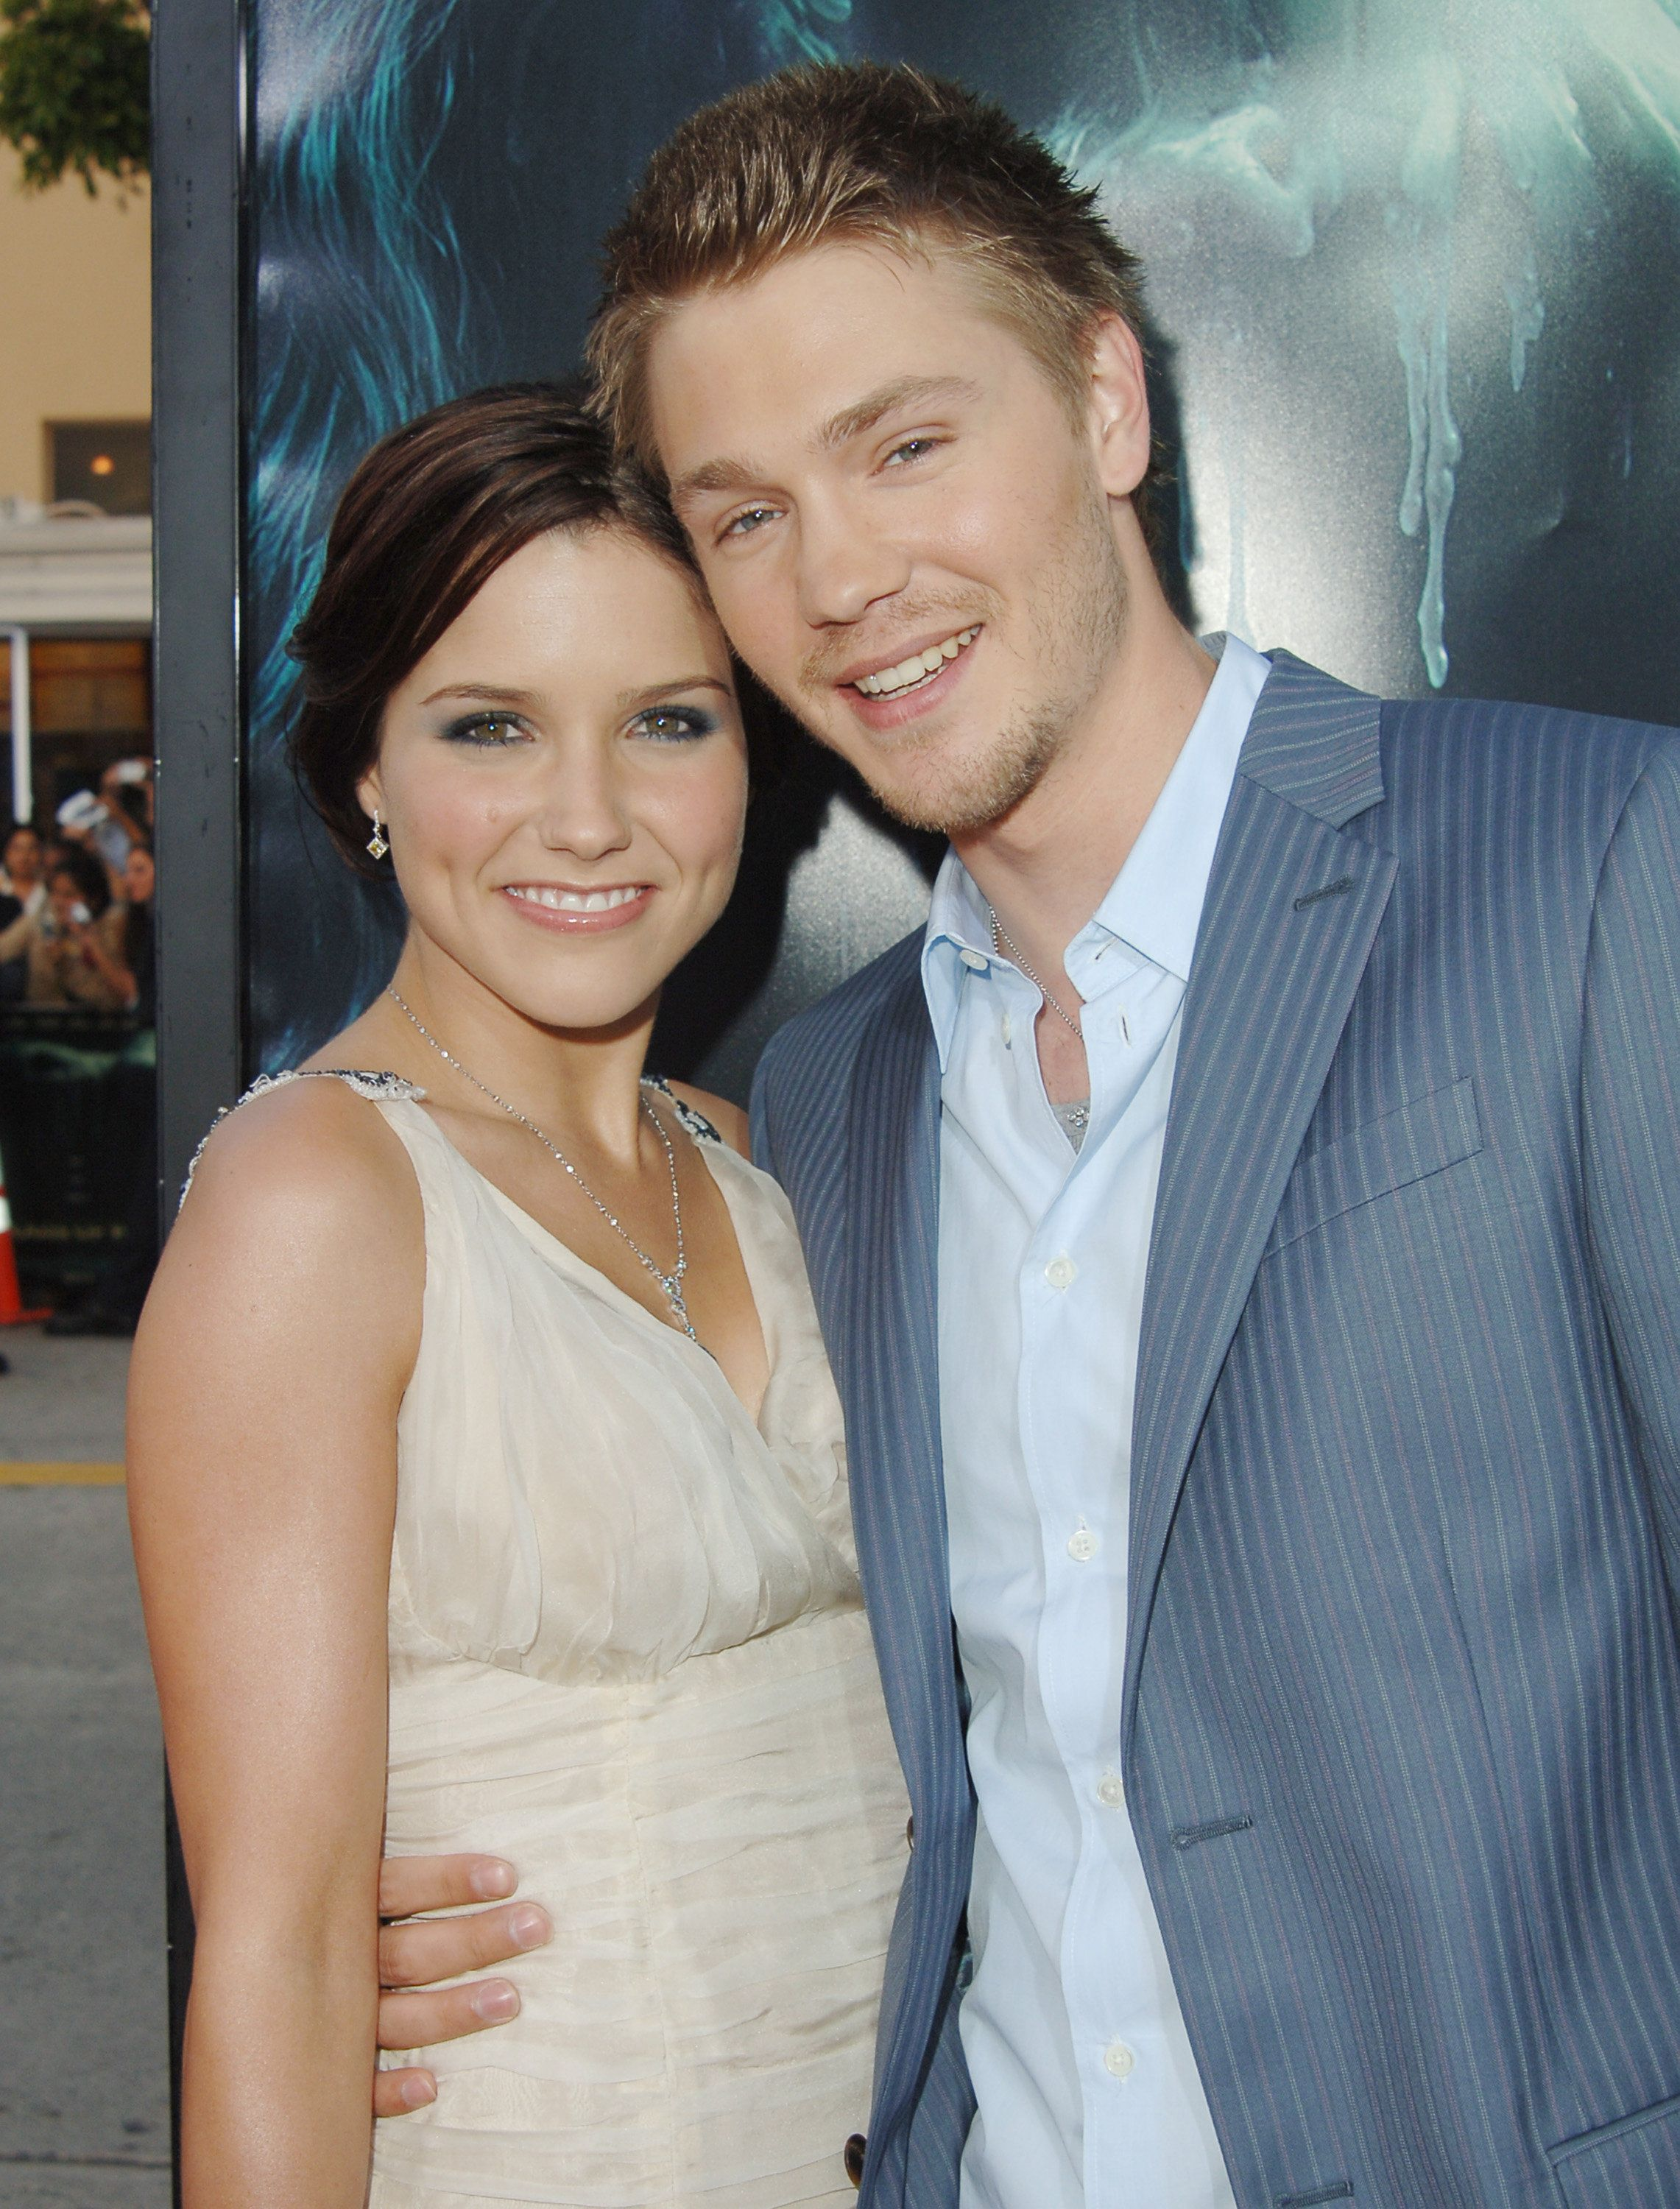 Sophia Bush and husband Chad Michael Murray during 'House of Wax' Los Angeles Premiere - Outside Arrivals at Mann Village Theater in Westwood, California, United States. (Photo by Jon Kopaloff/FilmMagic)